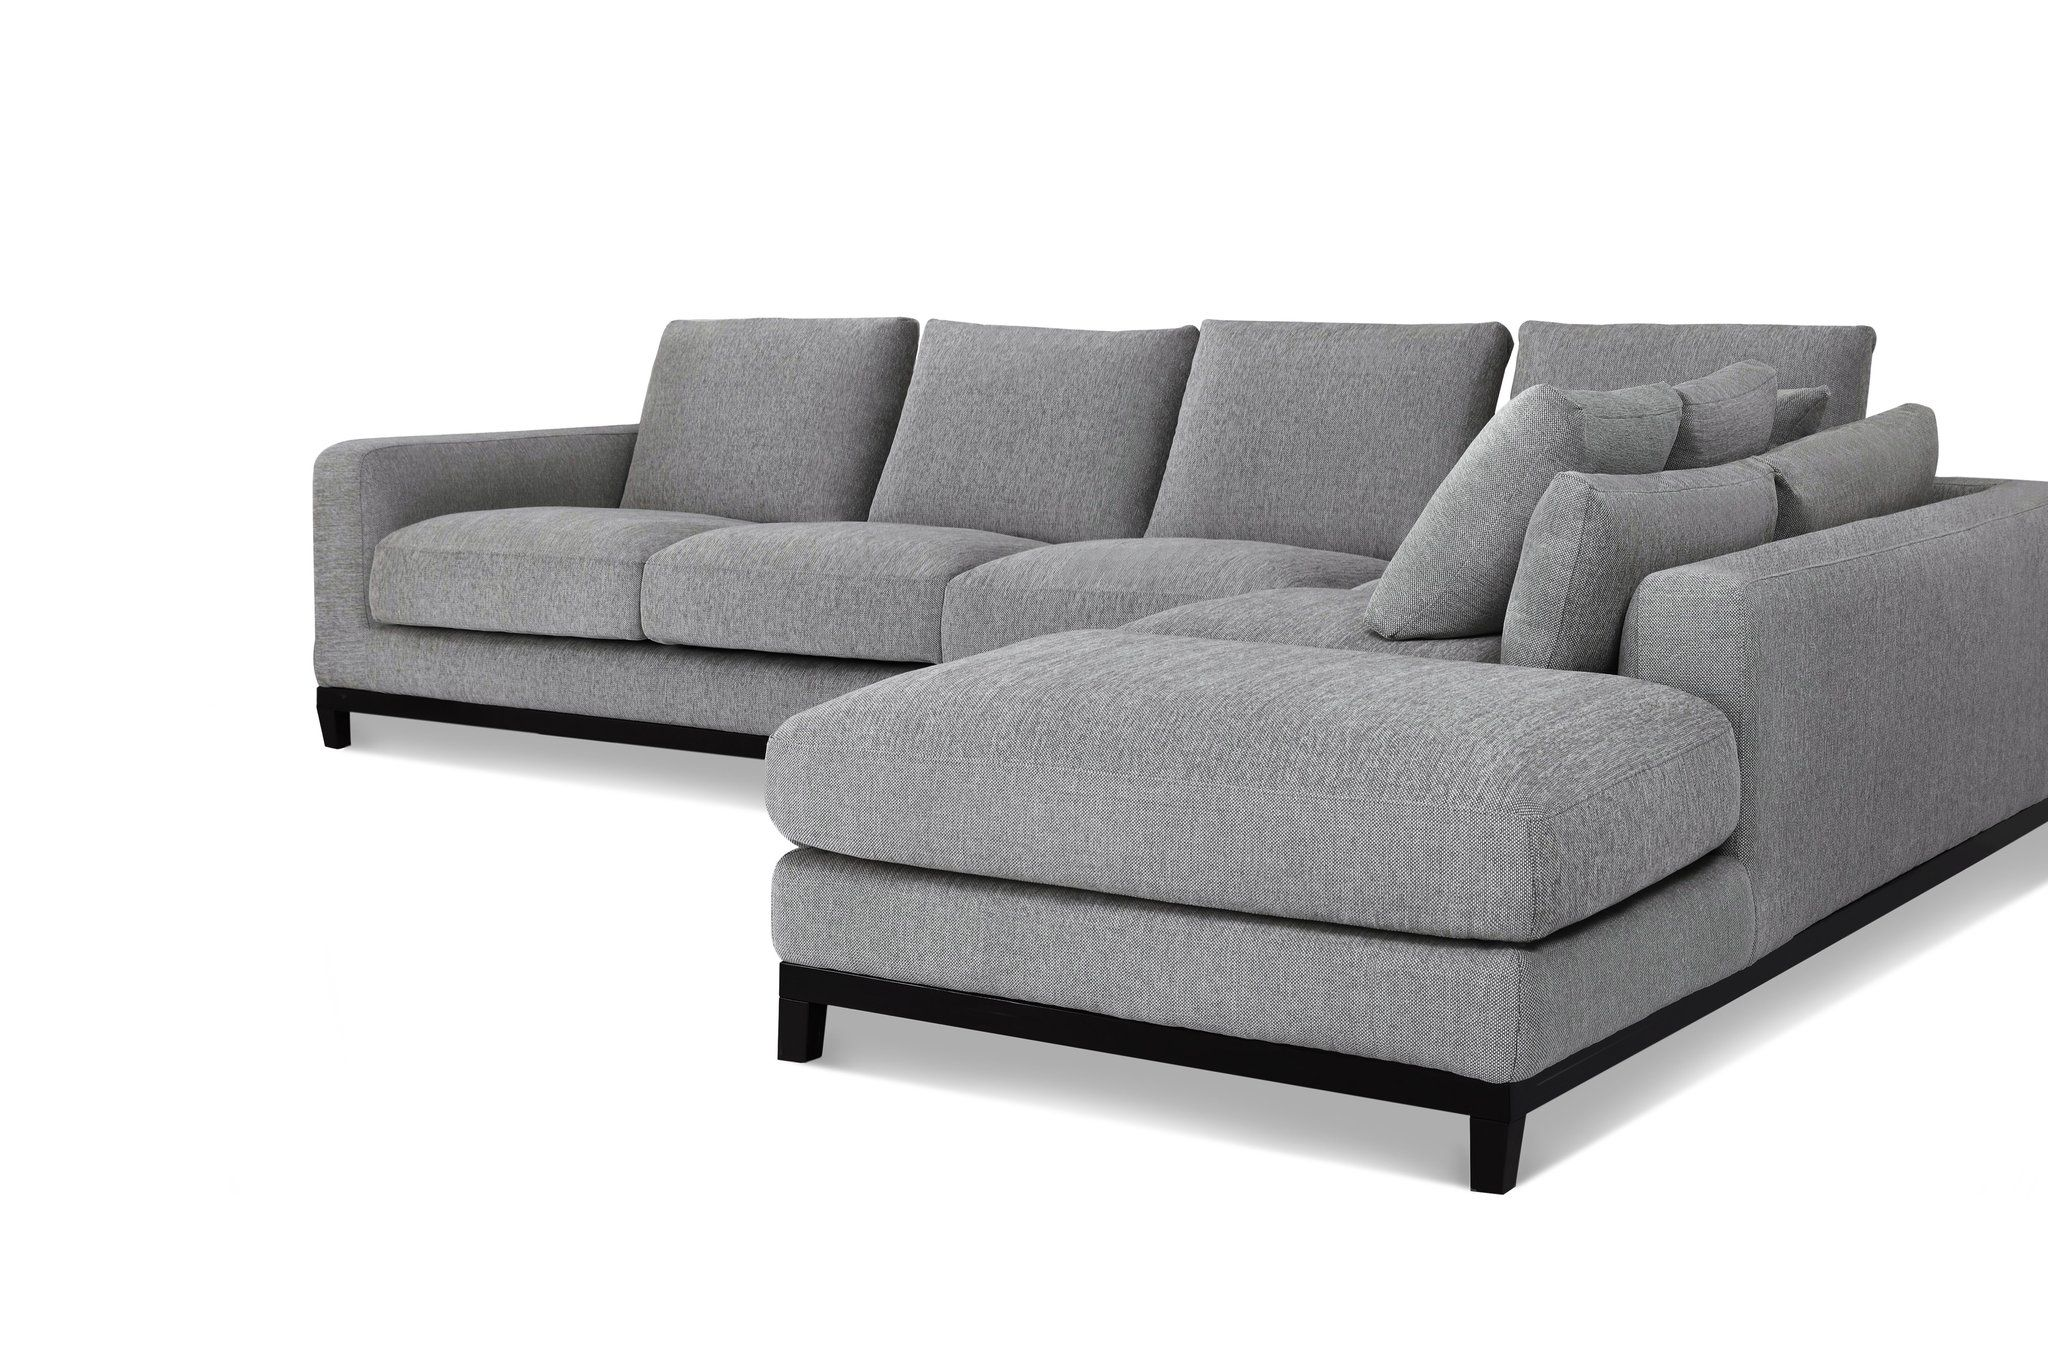 1011ftgryr Kellan Sectional Sofa Right Chaise In Grey Tweed